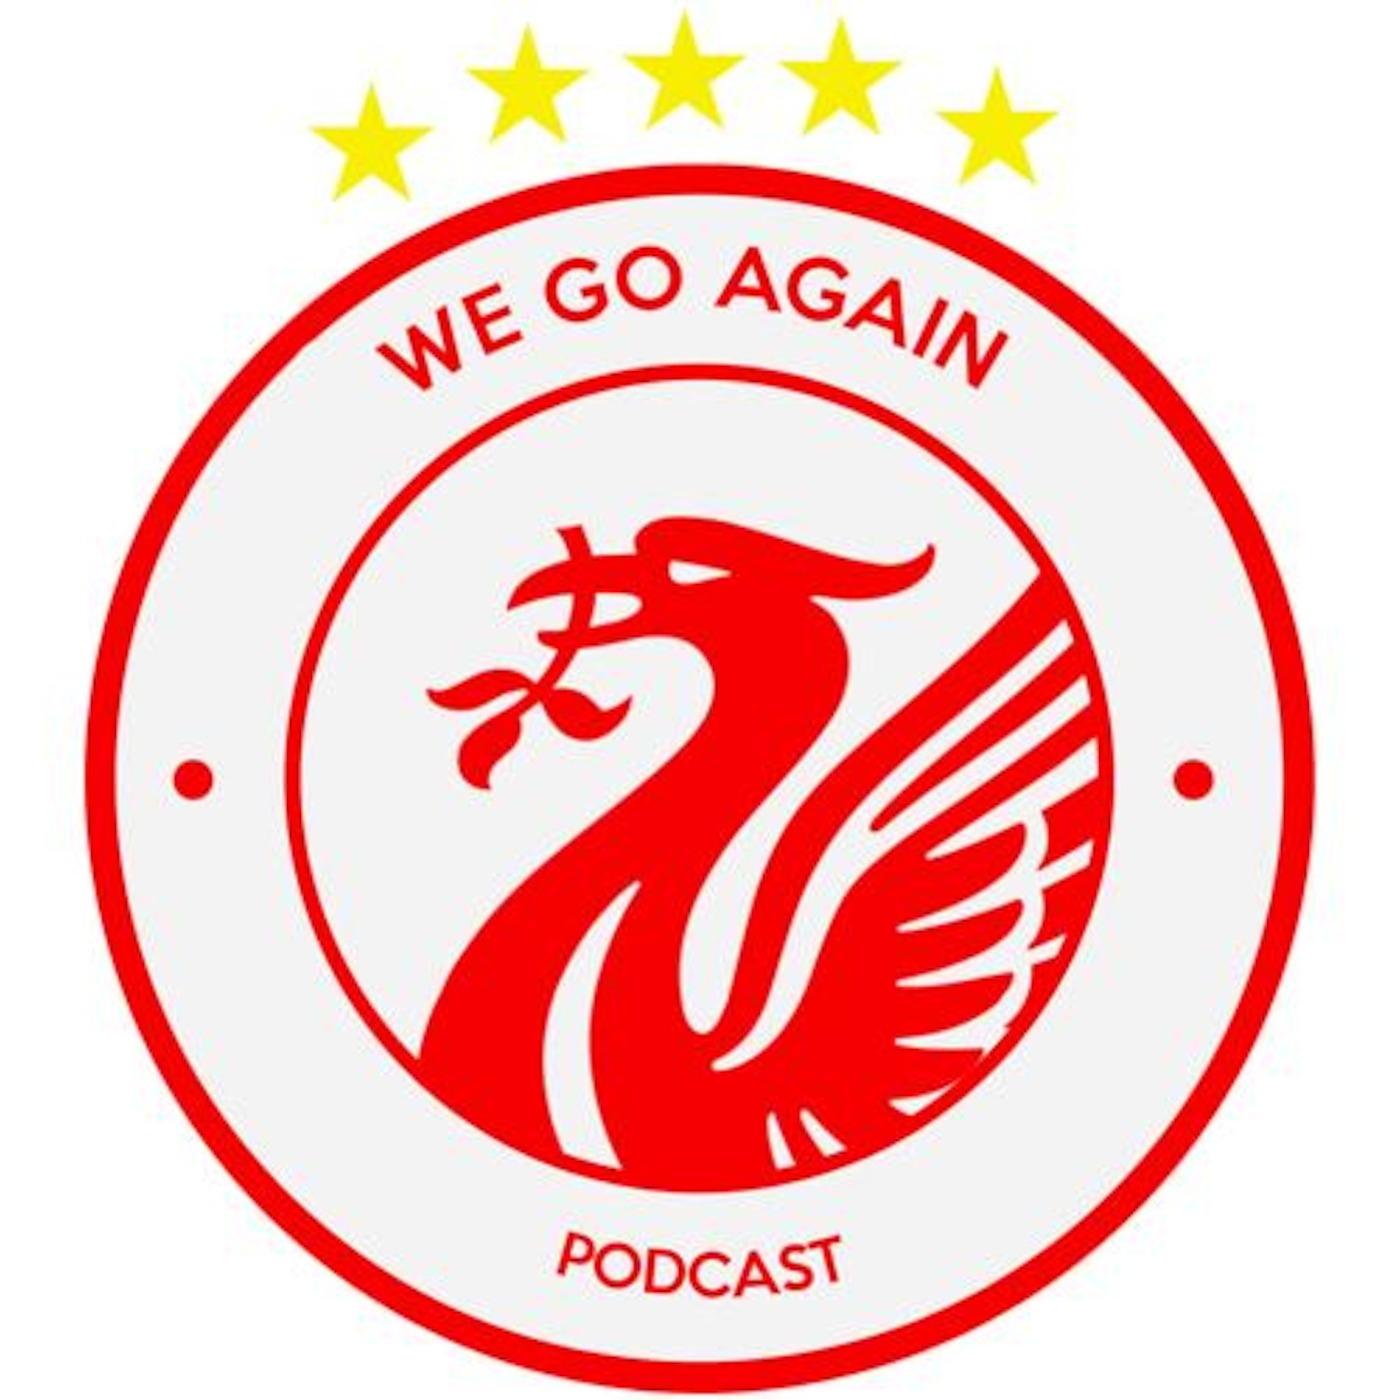 The Fresh Liverpool Podcasts